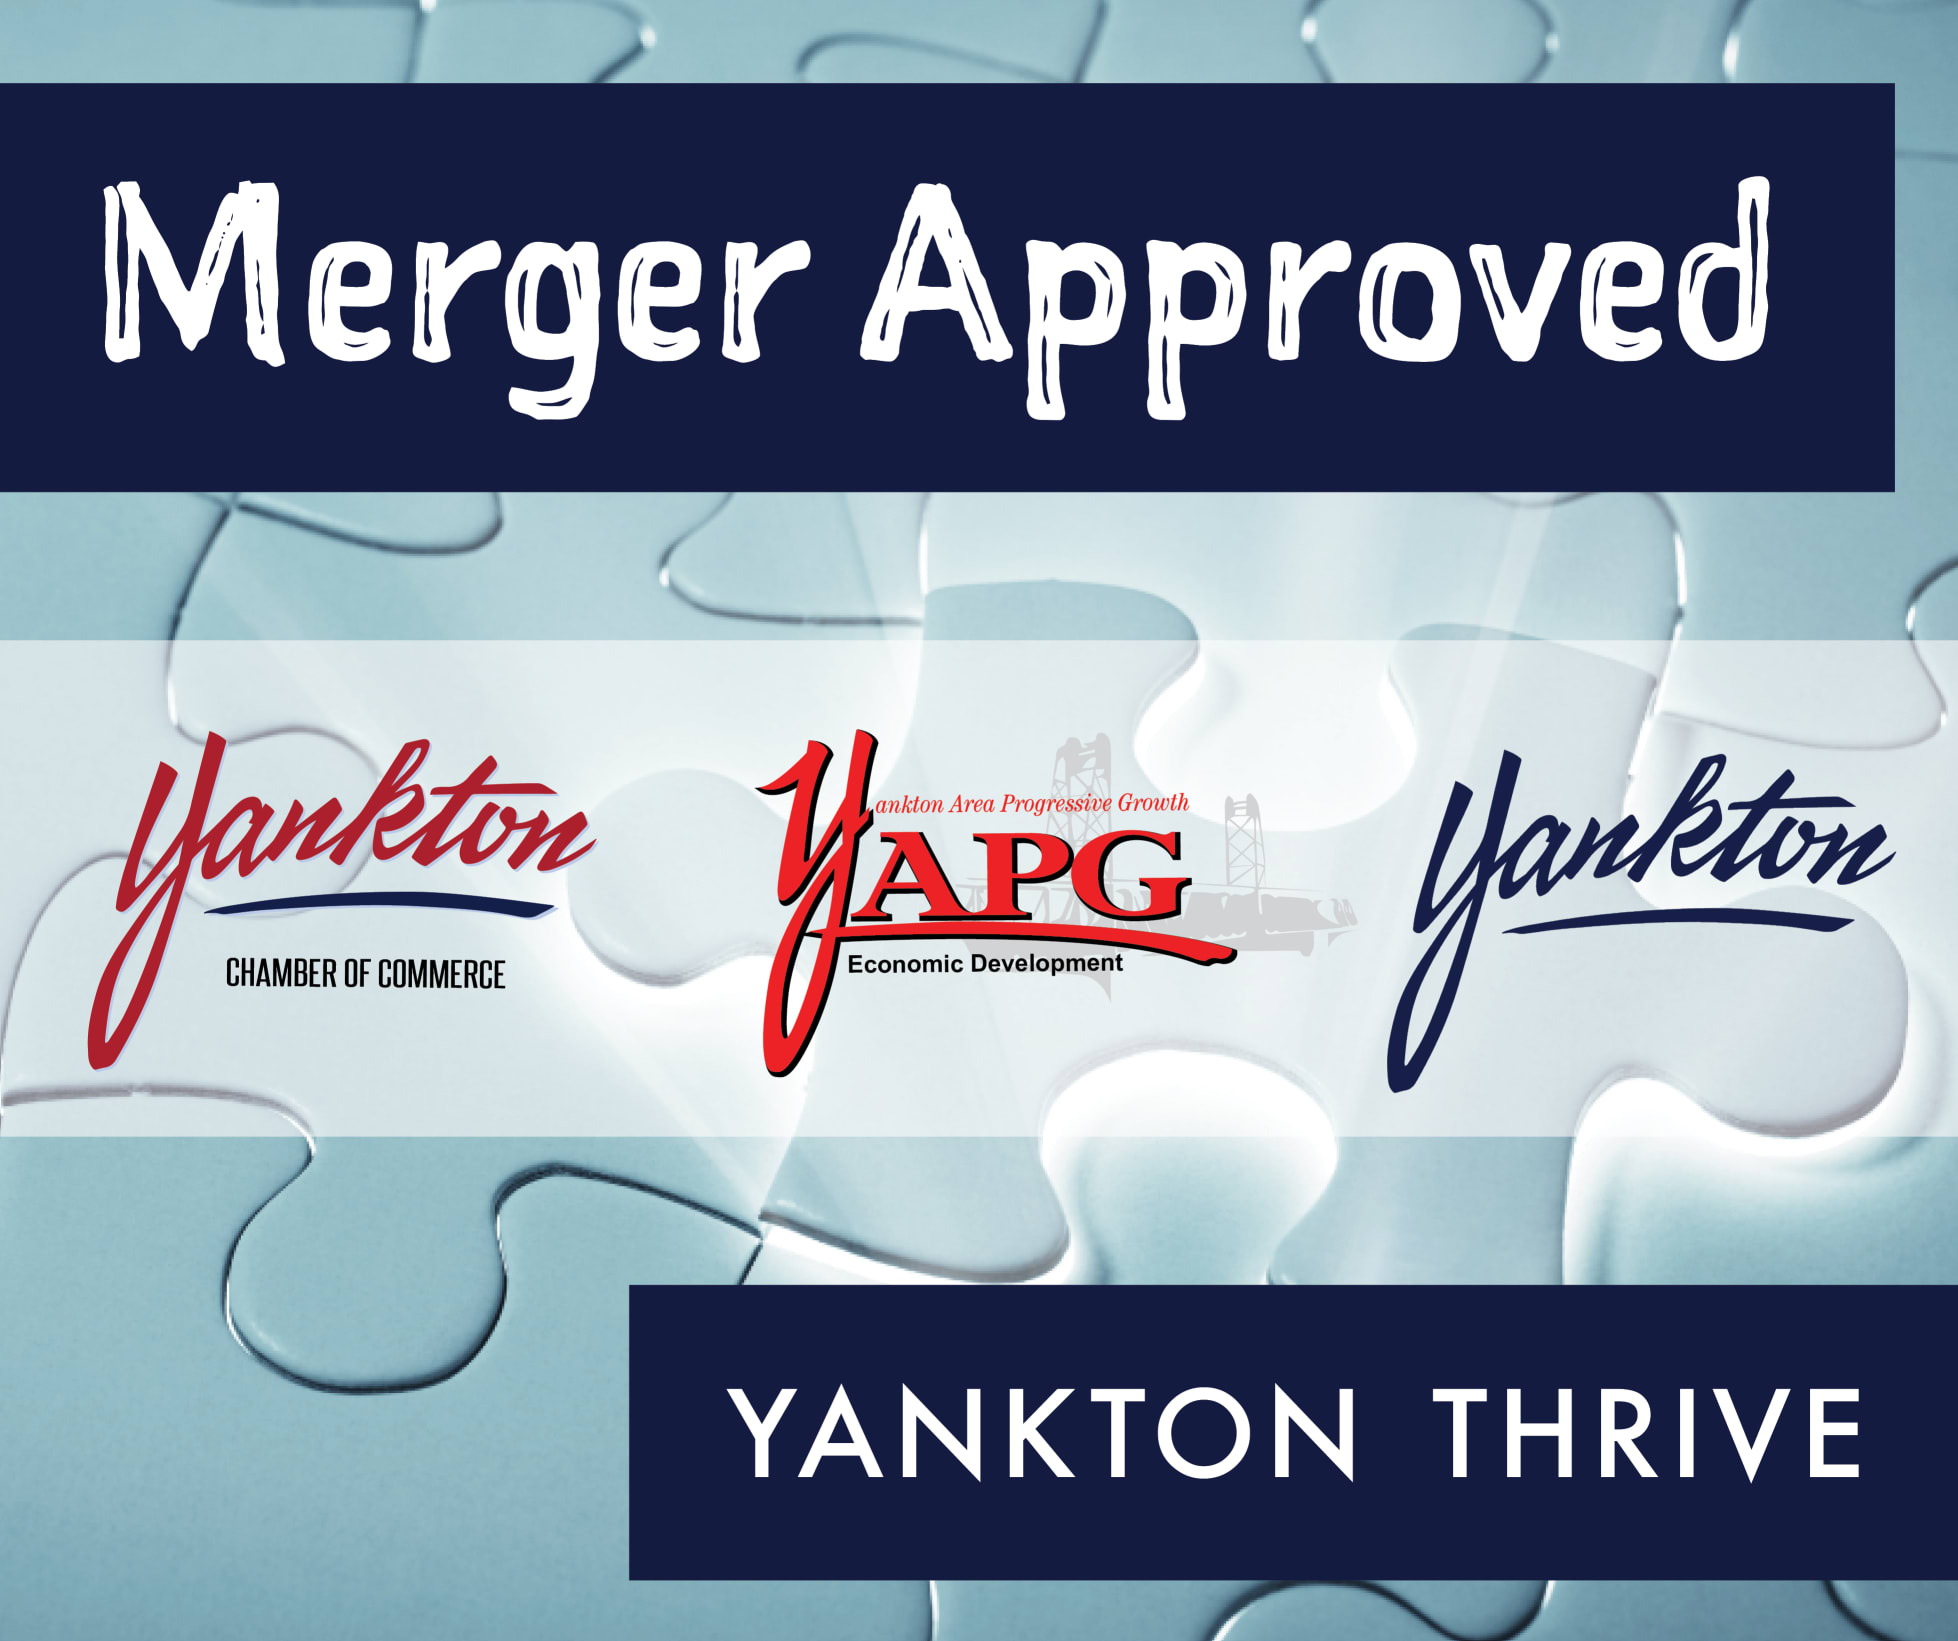 Merger-Approved-Facebook-Graphic-w1958.jpg